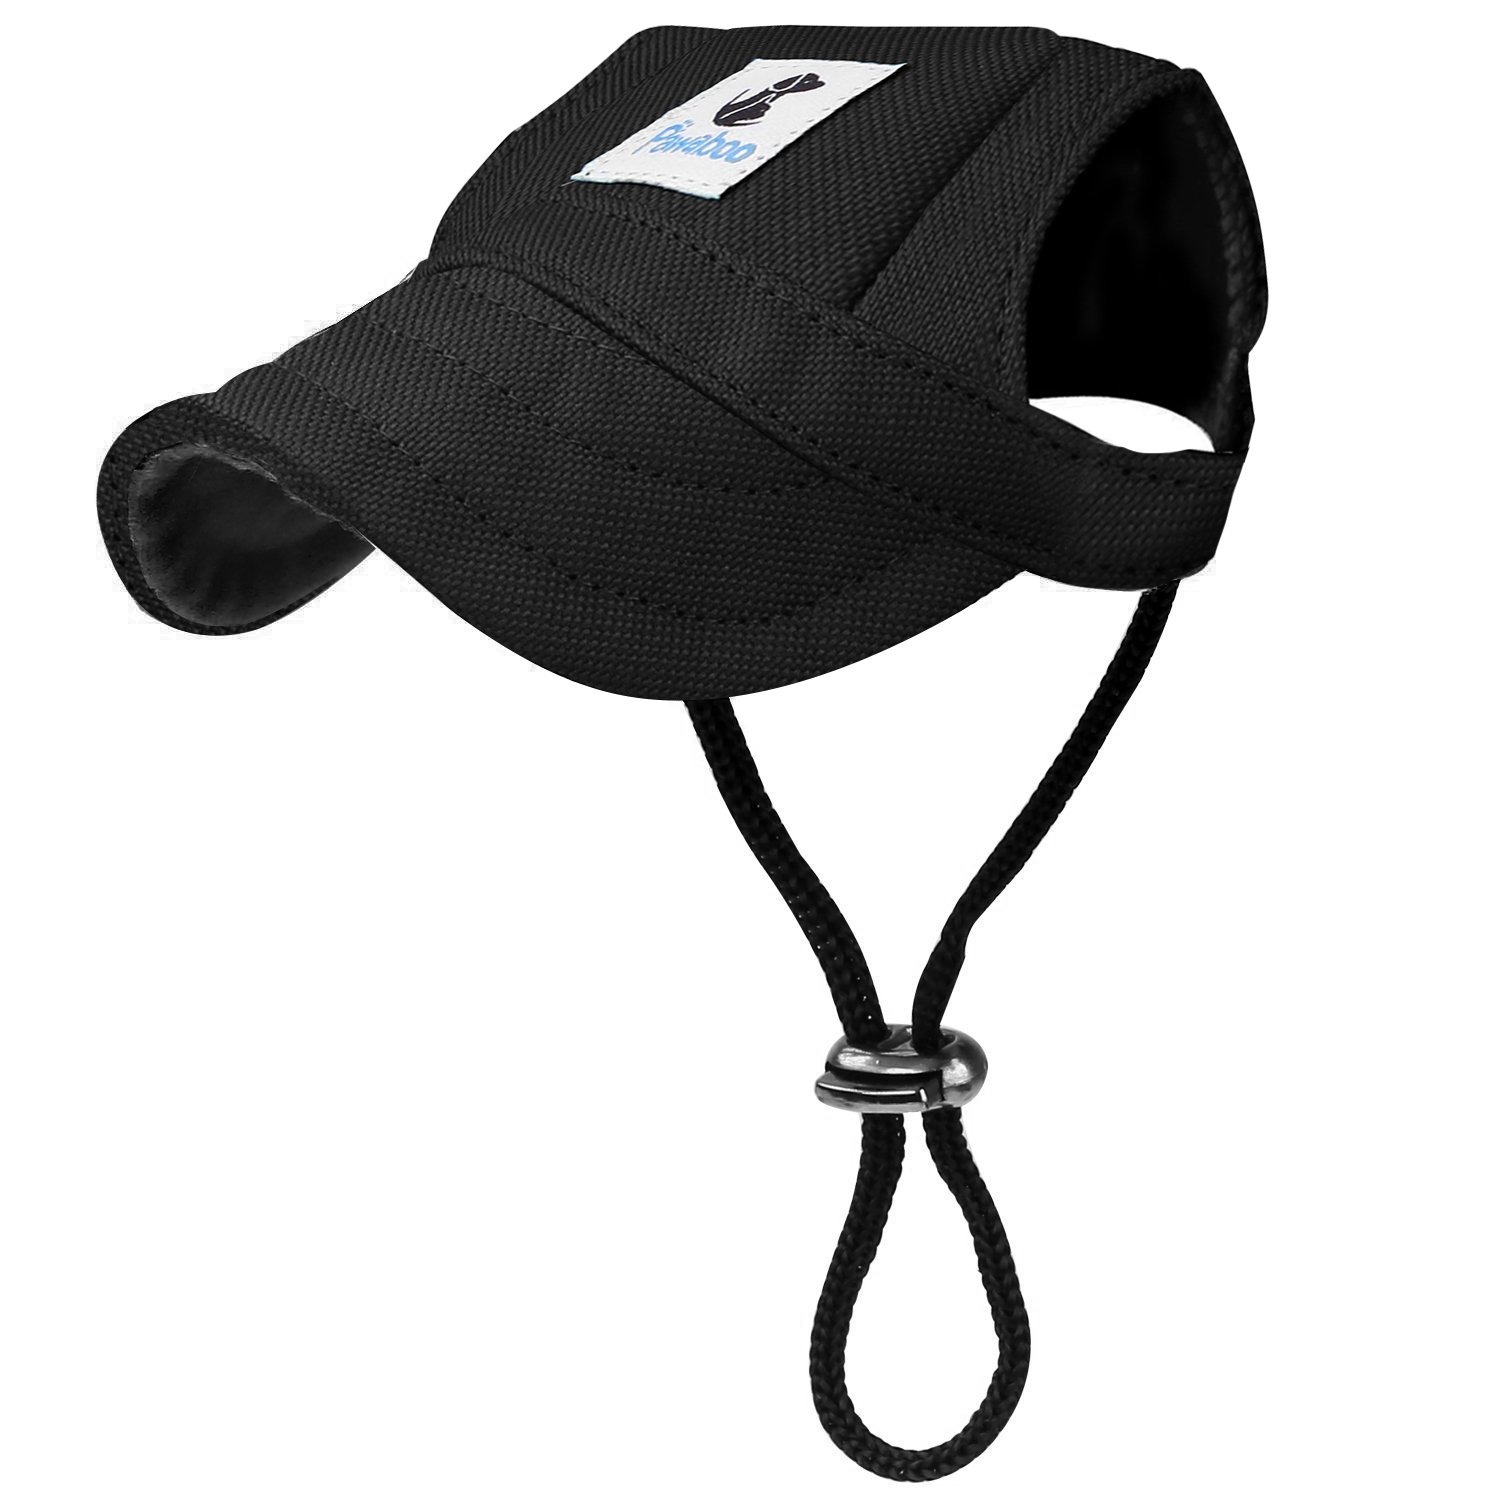 Pawaboo Dog Baseball Cap Black Adjustable Pet Sun Outdoor Sport Visor Dog Baseball Hat with 2 Ear Holes and Chin Strap for Large Size Dogs